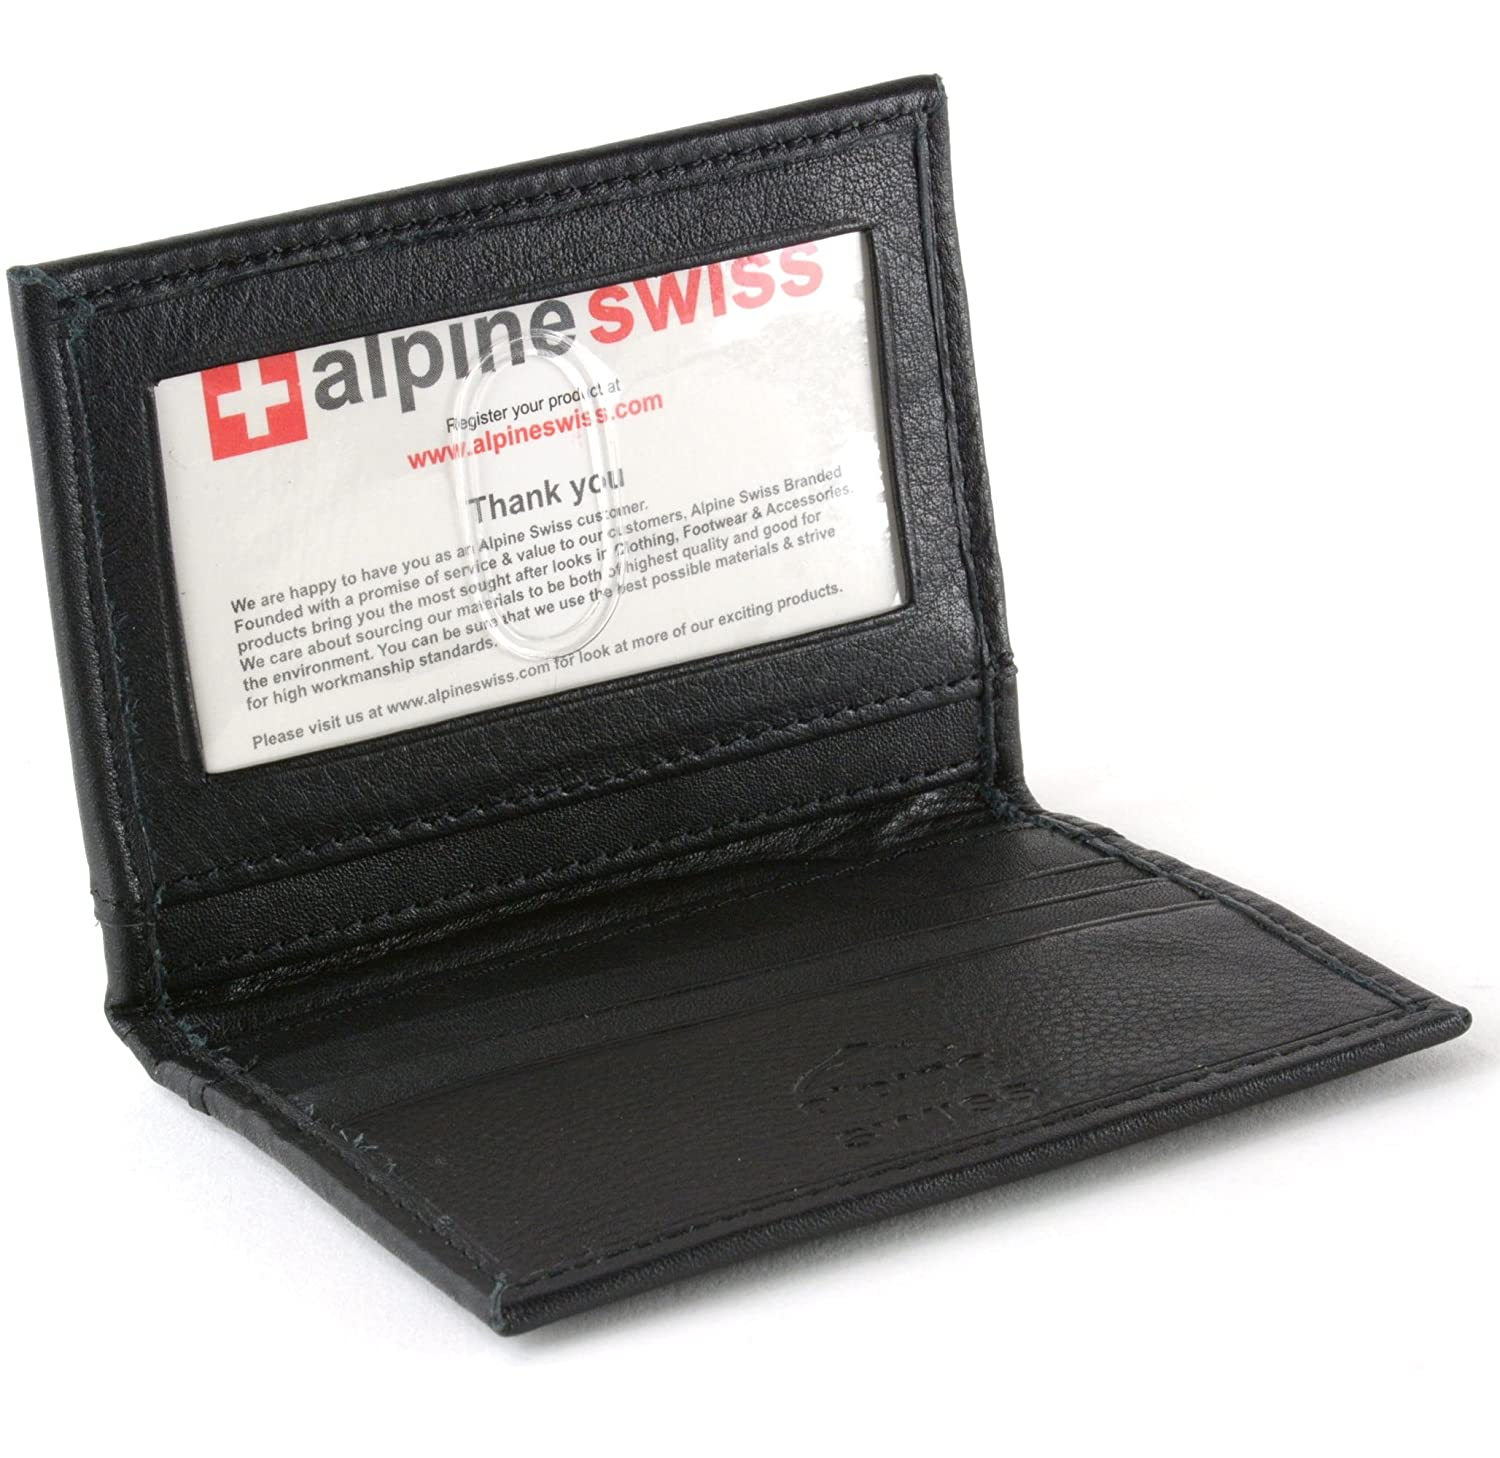 Alpine swiss thin front pocket wallet business card case 2 id window alpine swiss thin front pocket wallet business card case 2 id window 6 card slot black at amazon mens clothing store colourmoves Images